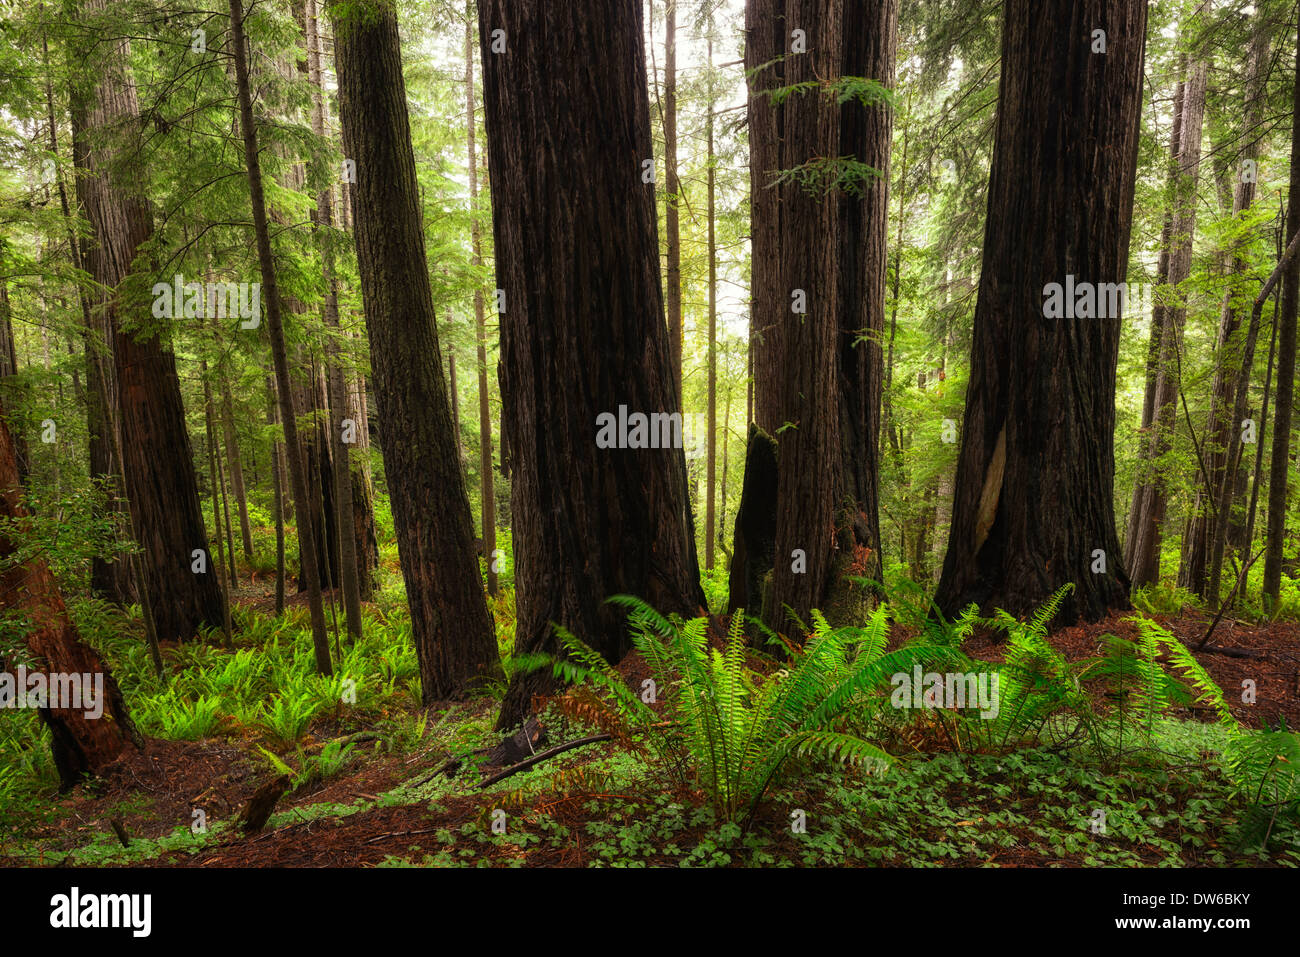 towering redwood tree trees trunk del norte coastal redwoods forest dense growth flowering sunrise glow - Stock Image